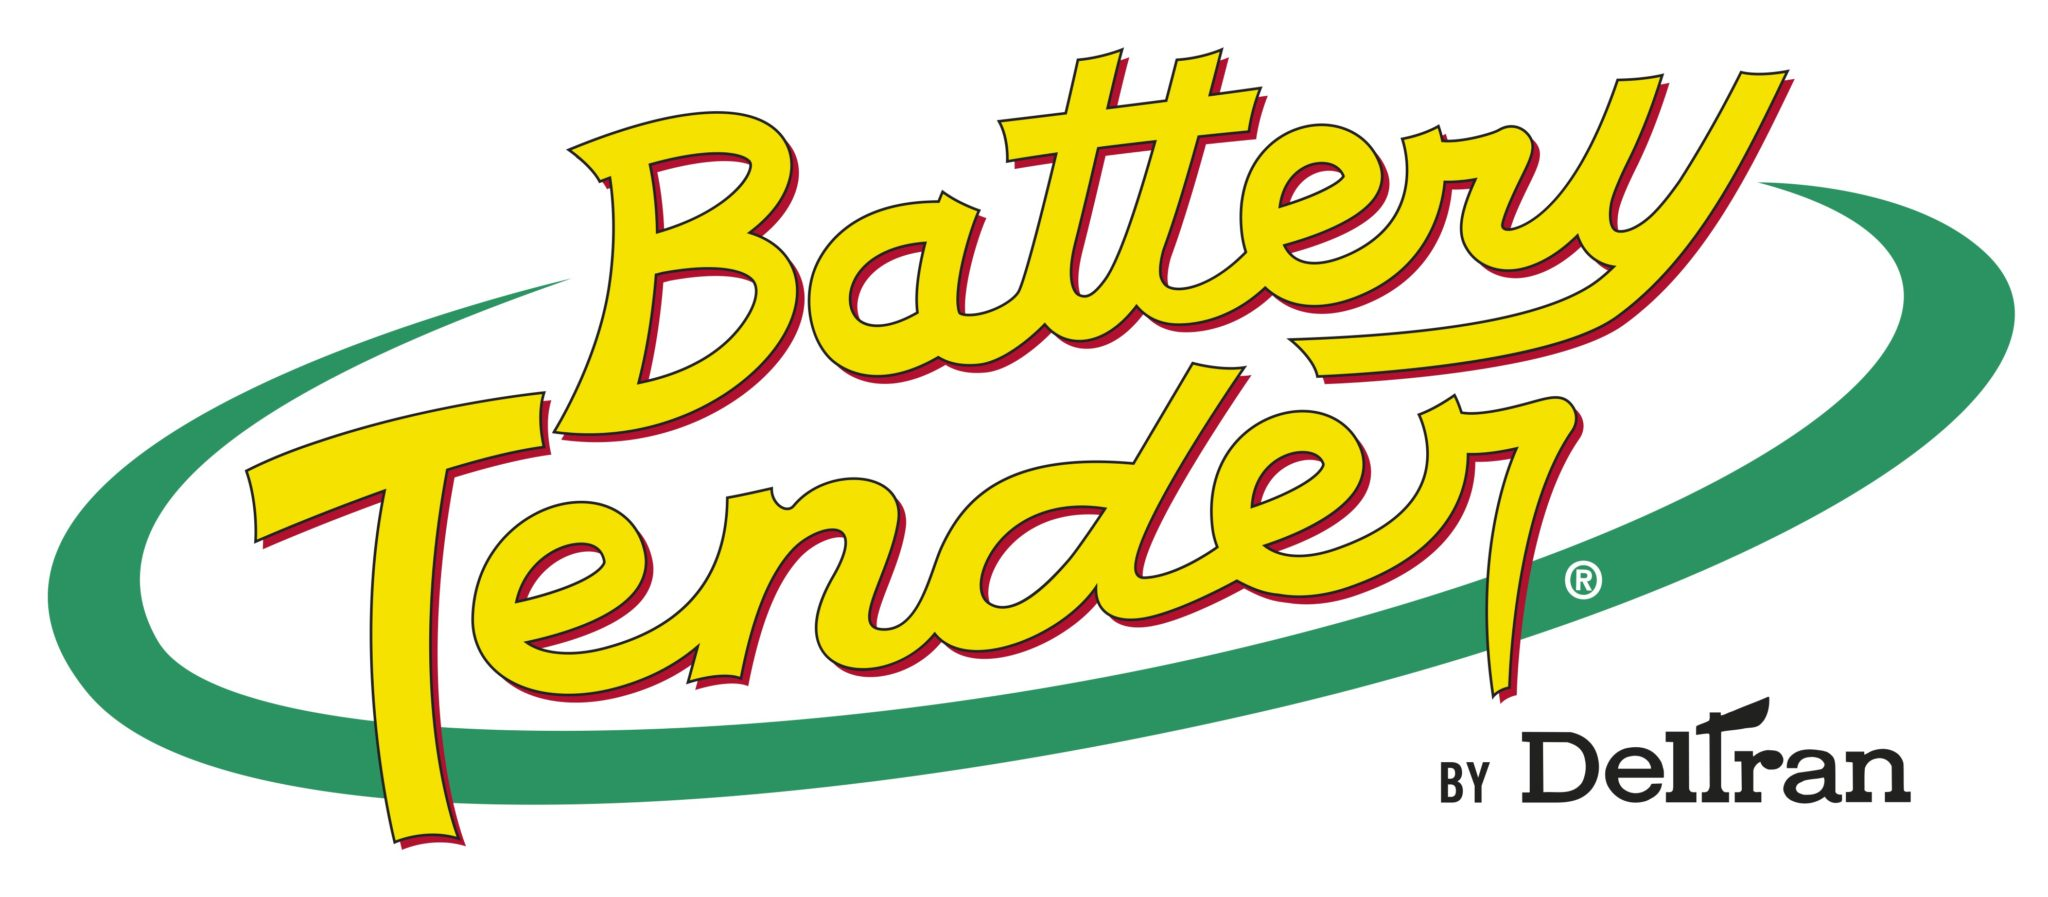 https://warriorkidsfoundation.org/wp-content/uploads/2018/06/Battery-Tender_LOGO_2018-02-lightBG.jpg